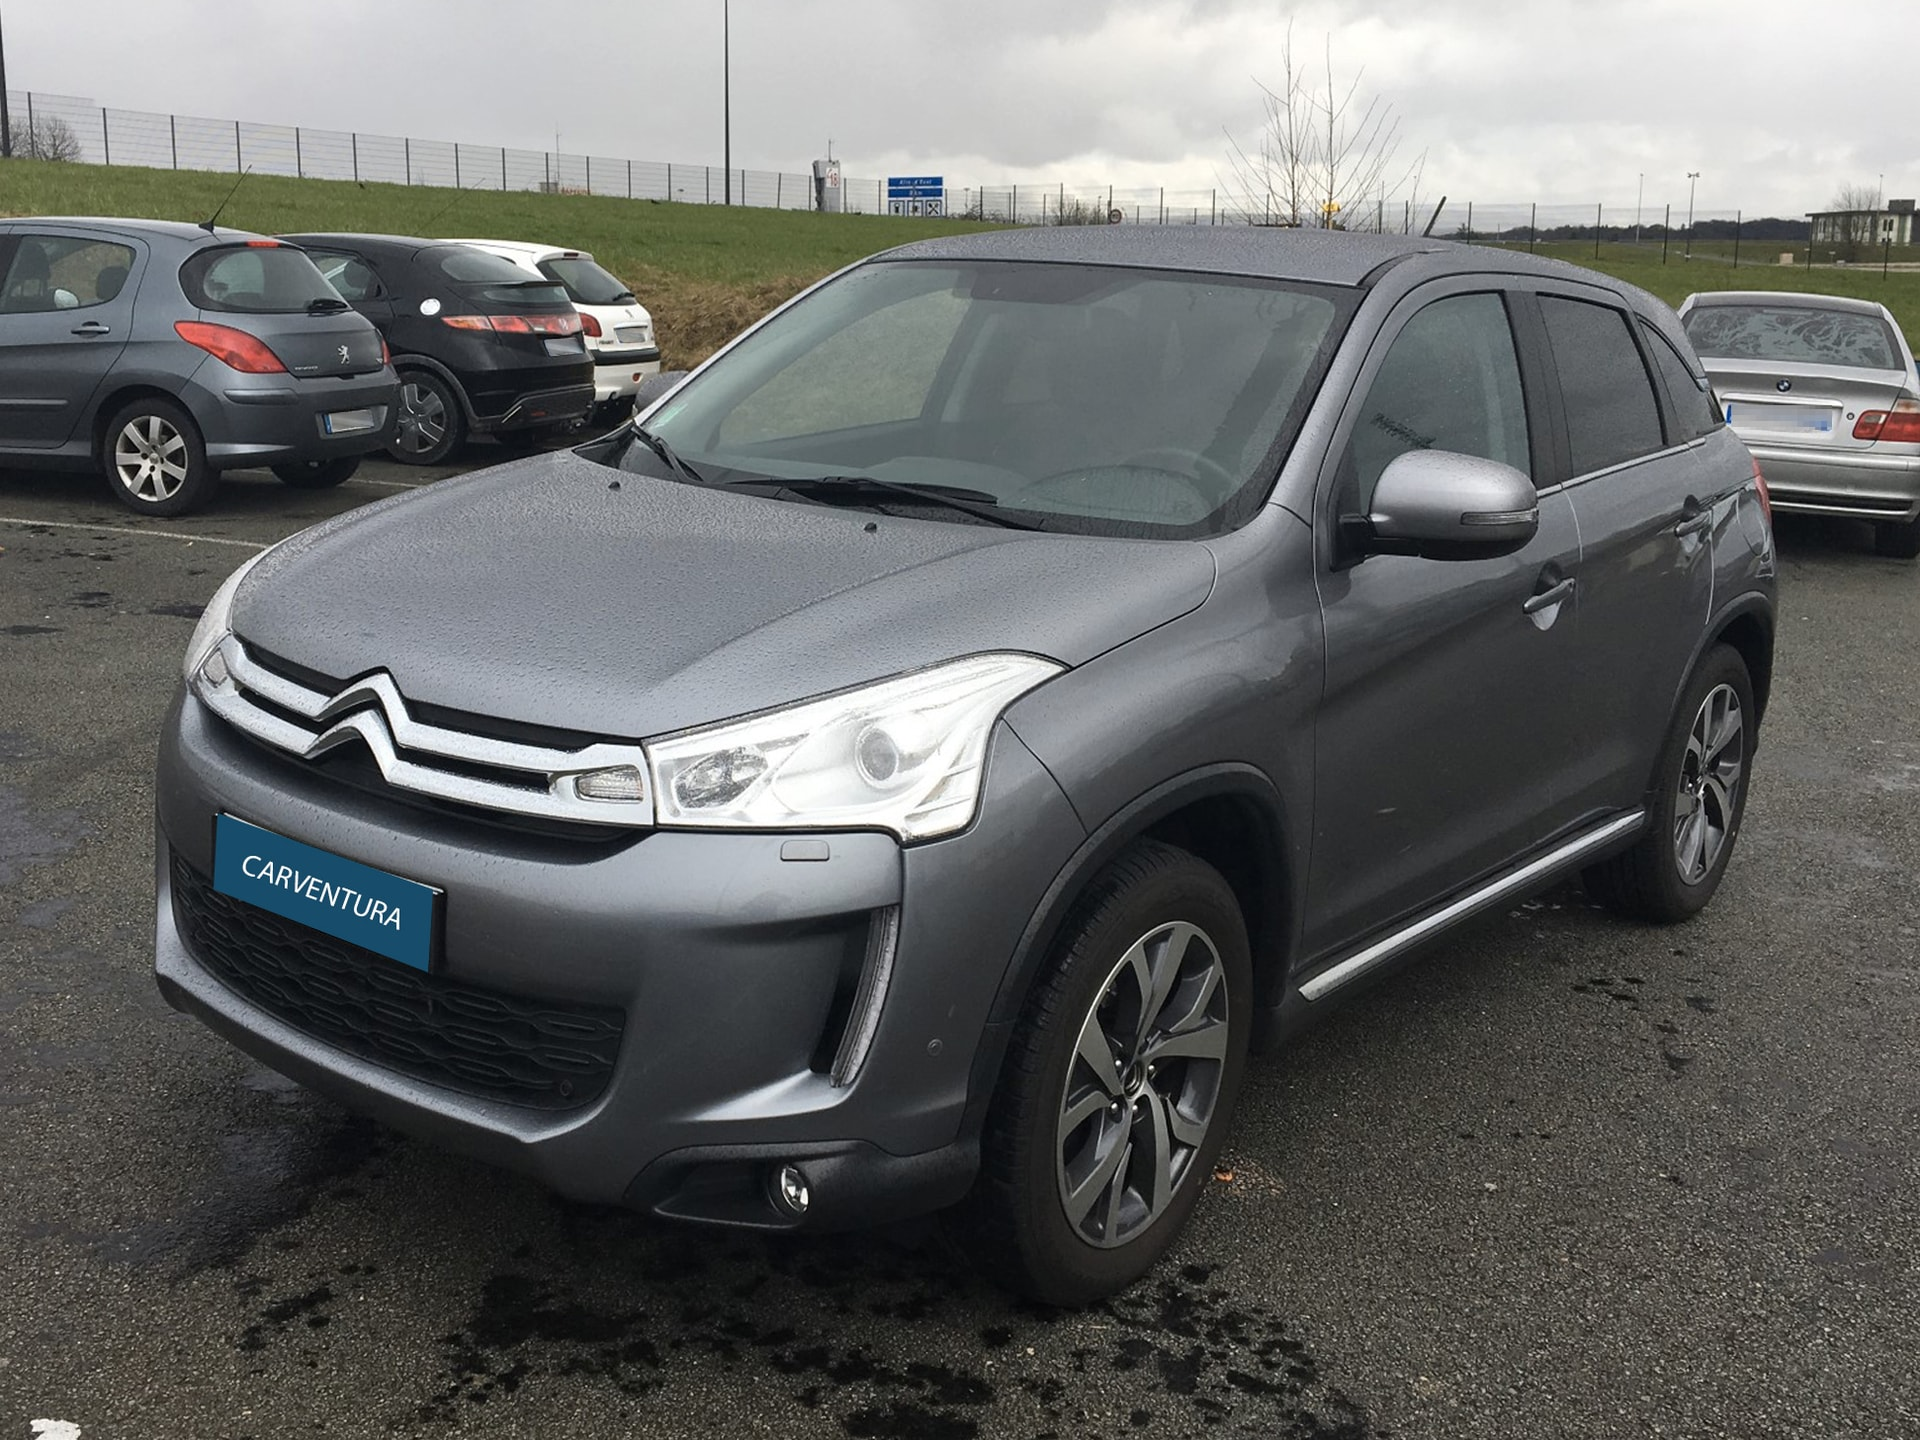 CITROEN C4 AIRCROSS 1.6 HDI 115 EXCLUSIVE 4X4 START-STOP - Carverntura